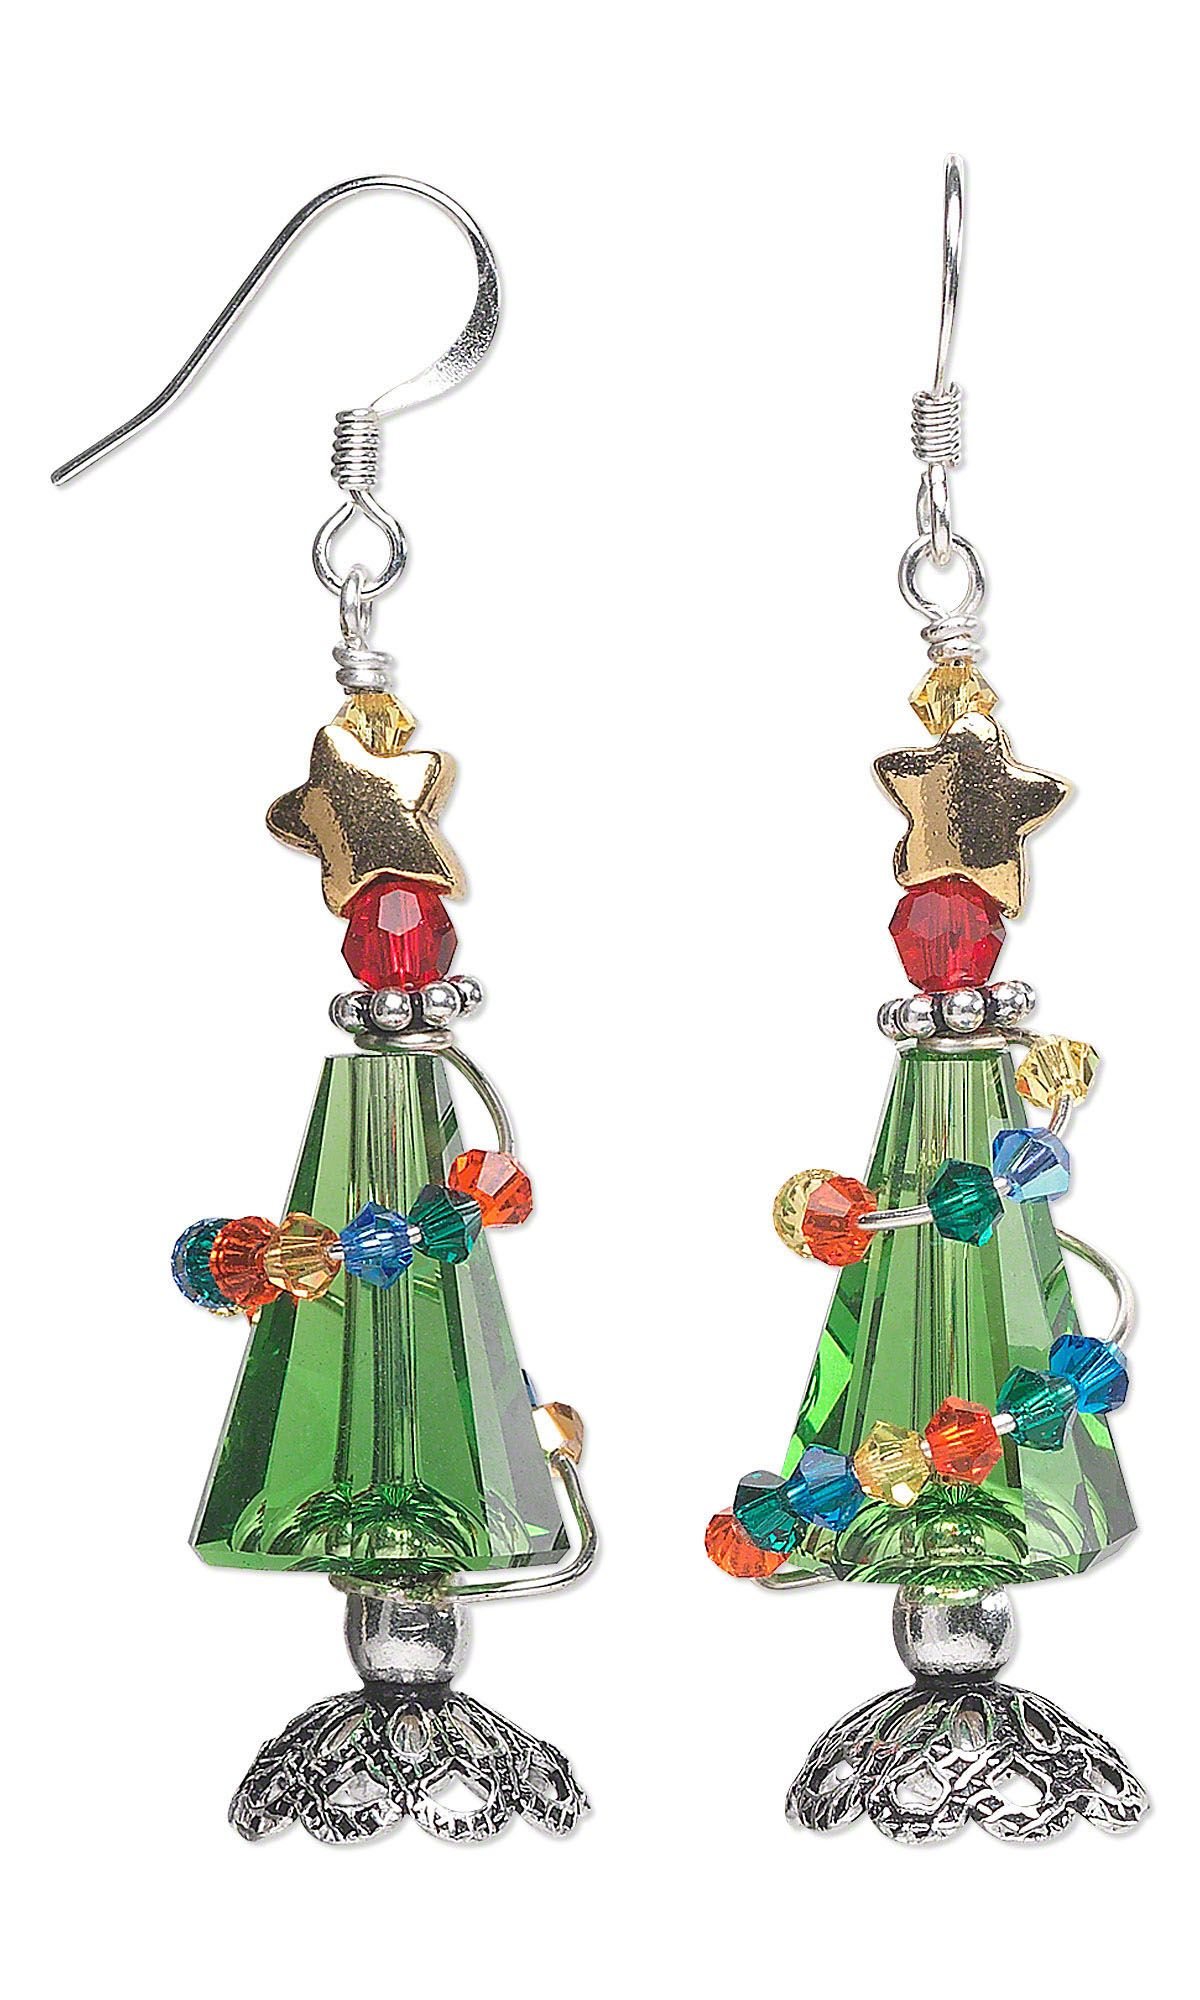 Jewelry Design - Earrings with Swarovski Crystal Beads and Wire Wrap ...